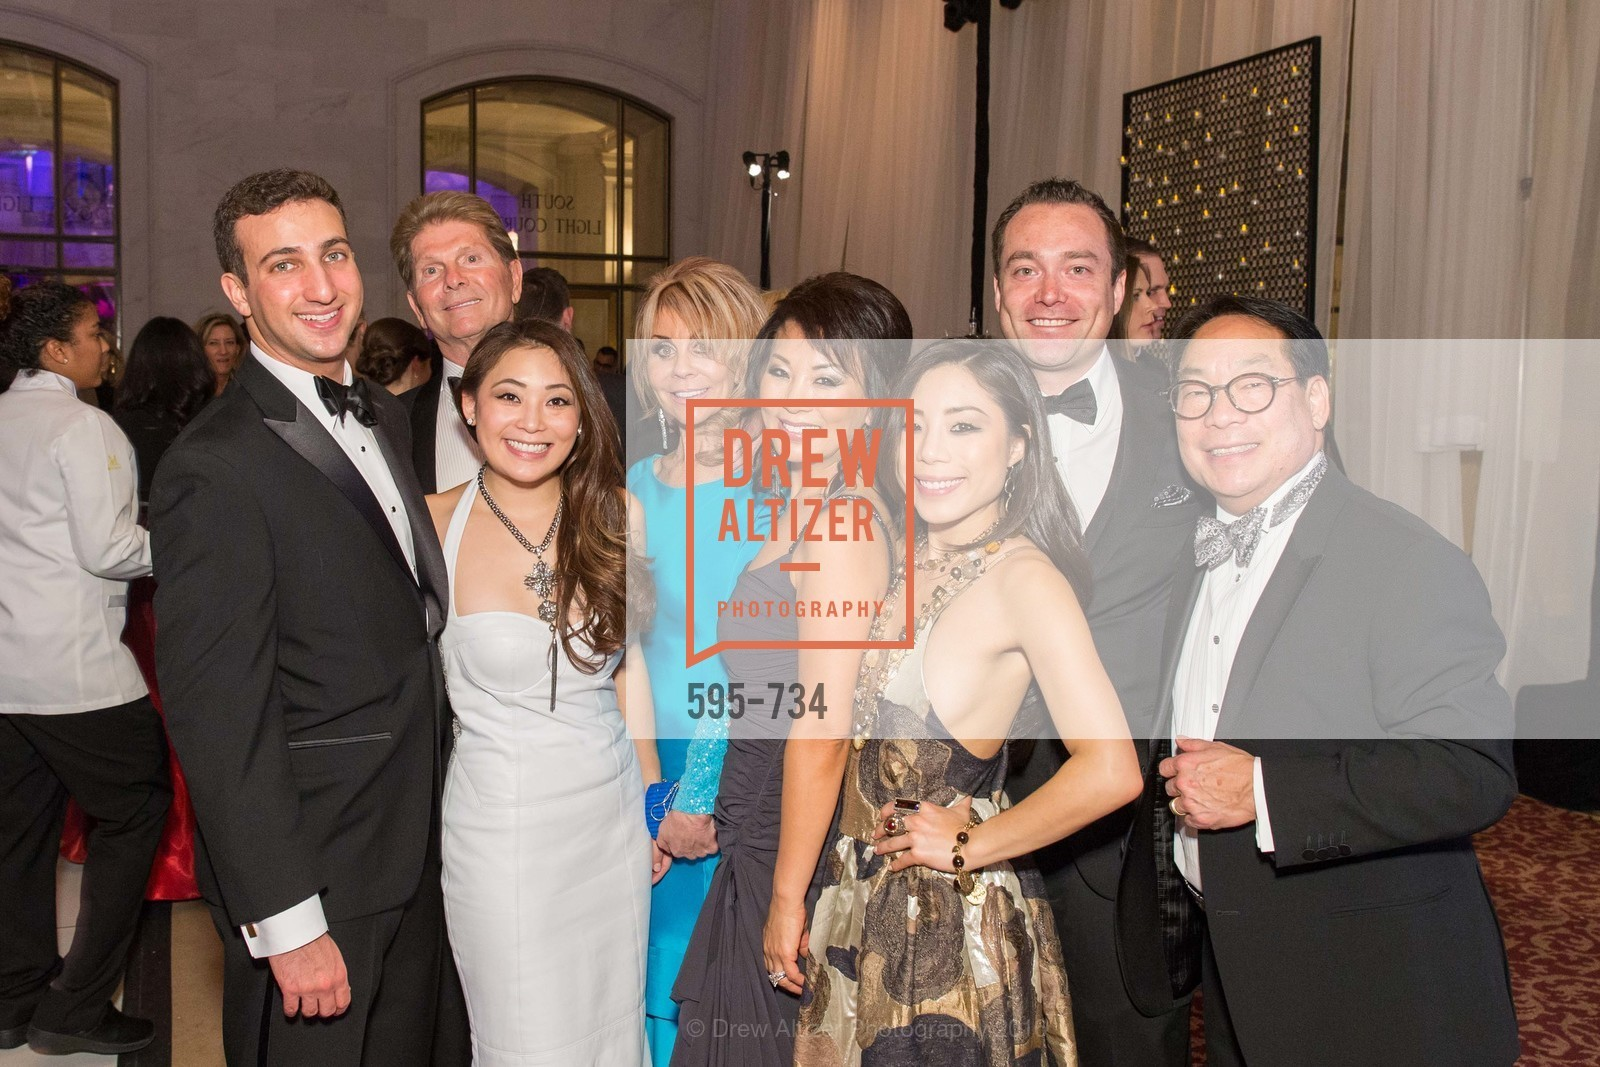 Husayn Hasan, Kelsey Lee, Tony Tonso, Barbara Tonso, Jennifer Lee, Jeff Conkey, Kristin Lee, Edward Lee, San Francisco Ballet 2016 ENCORE! Opening Night Gala, San Francisco City Hall. 1 Dr Carlton B Goodlett Pl, January 21st, 2016,Drew Altizer, Drew Altizer Photography, full-service agency, private events, San Francisco photographer, photographer california